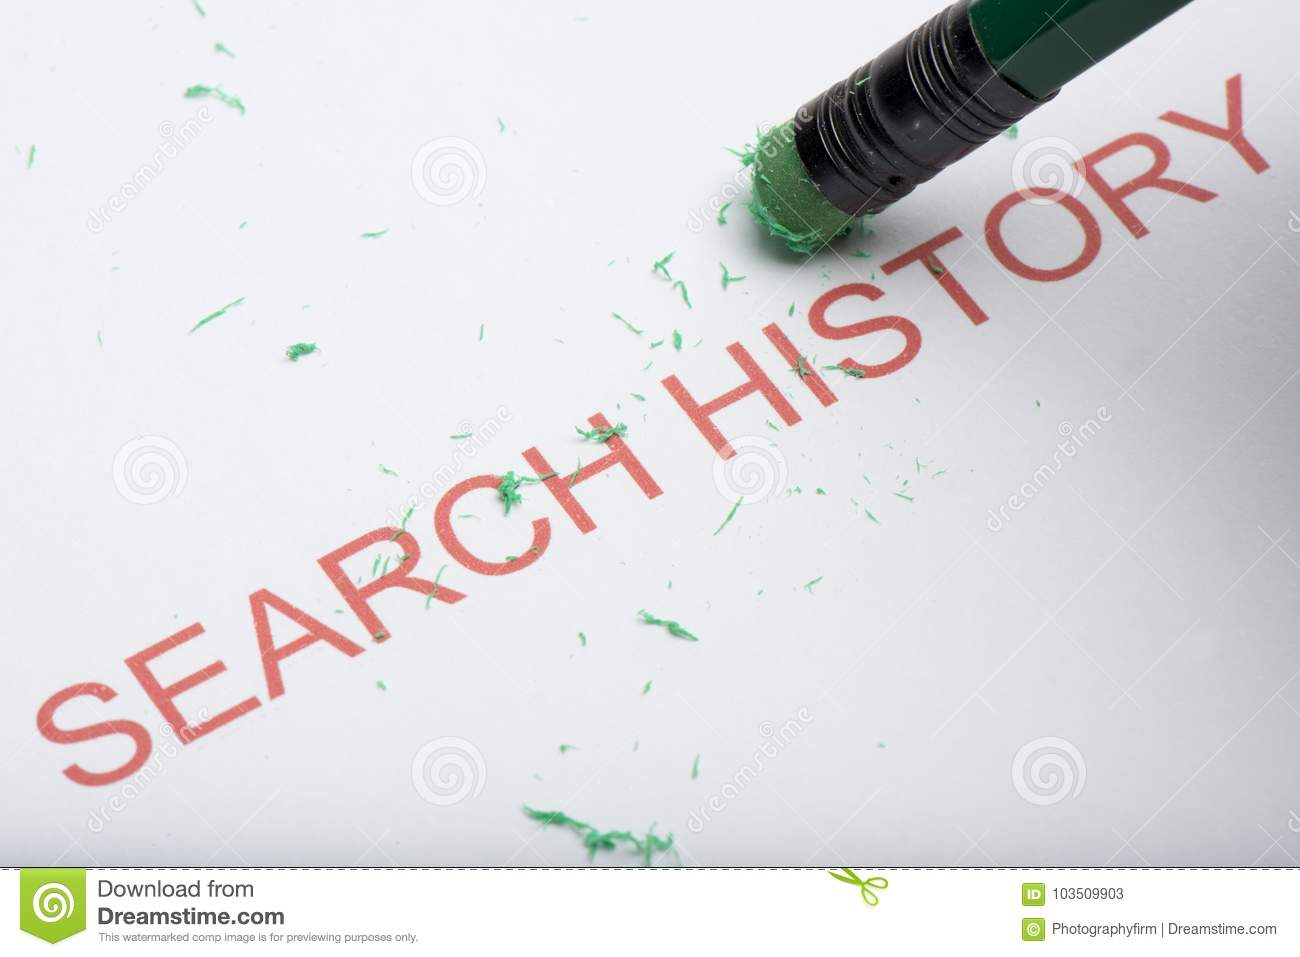 Pencil Erasing the Word `Search History` on Paper